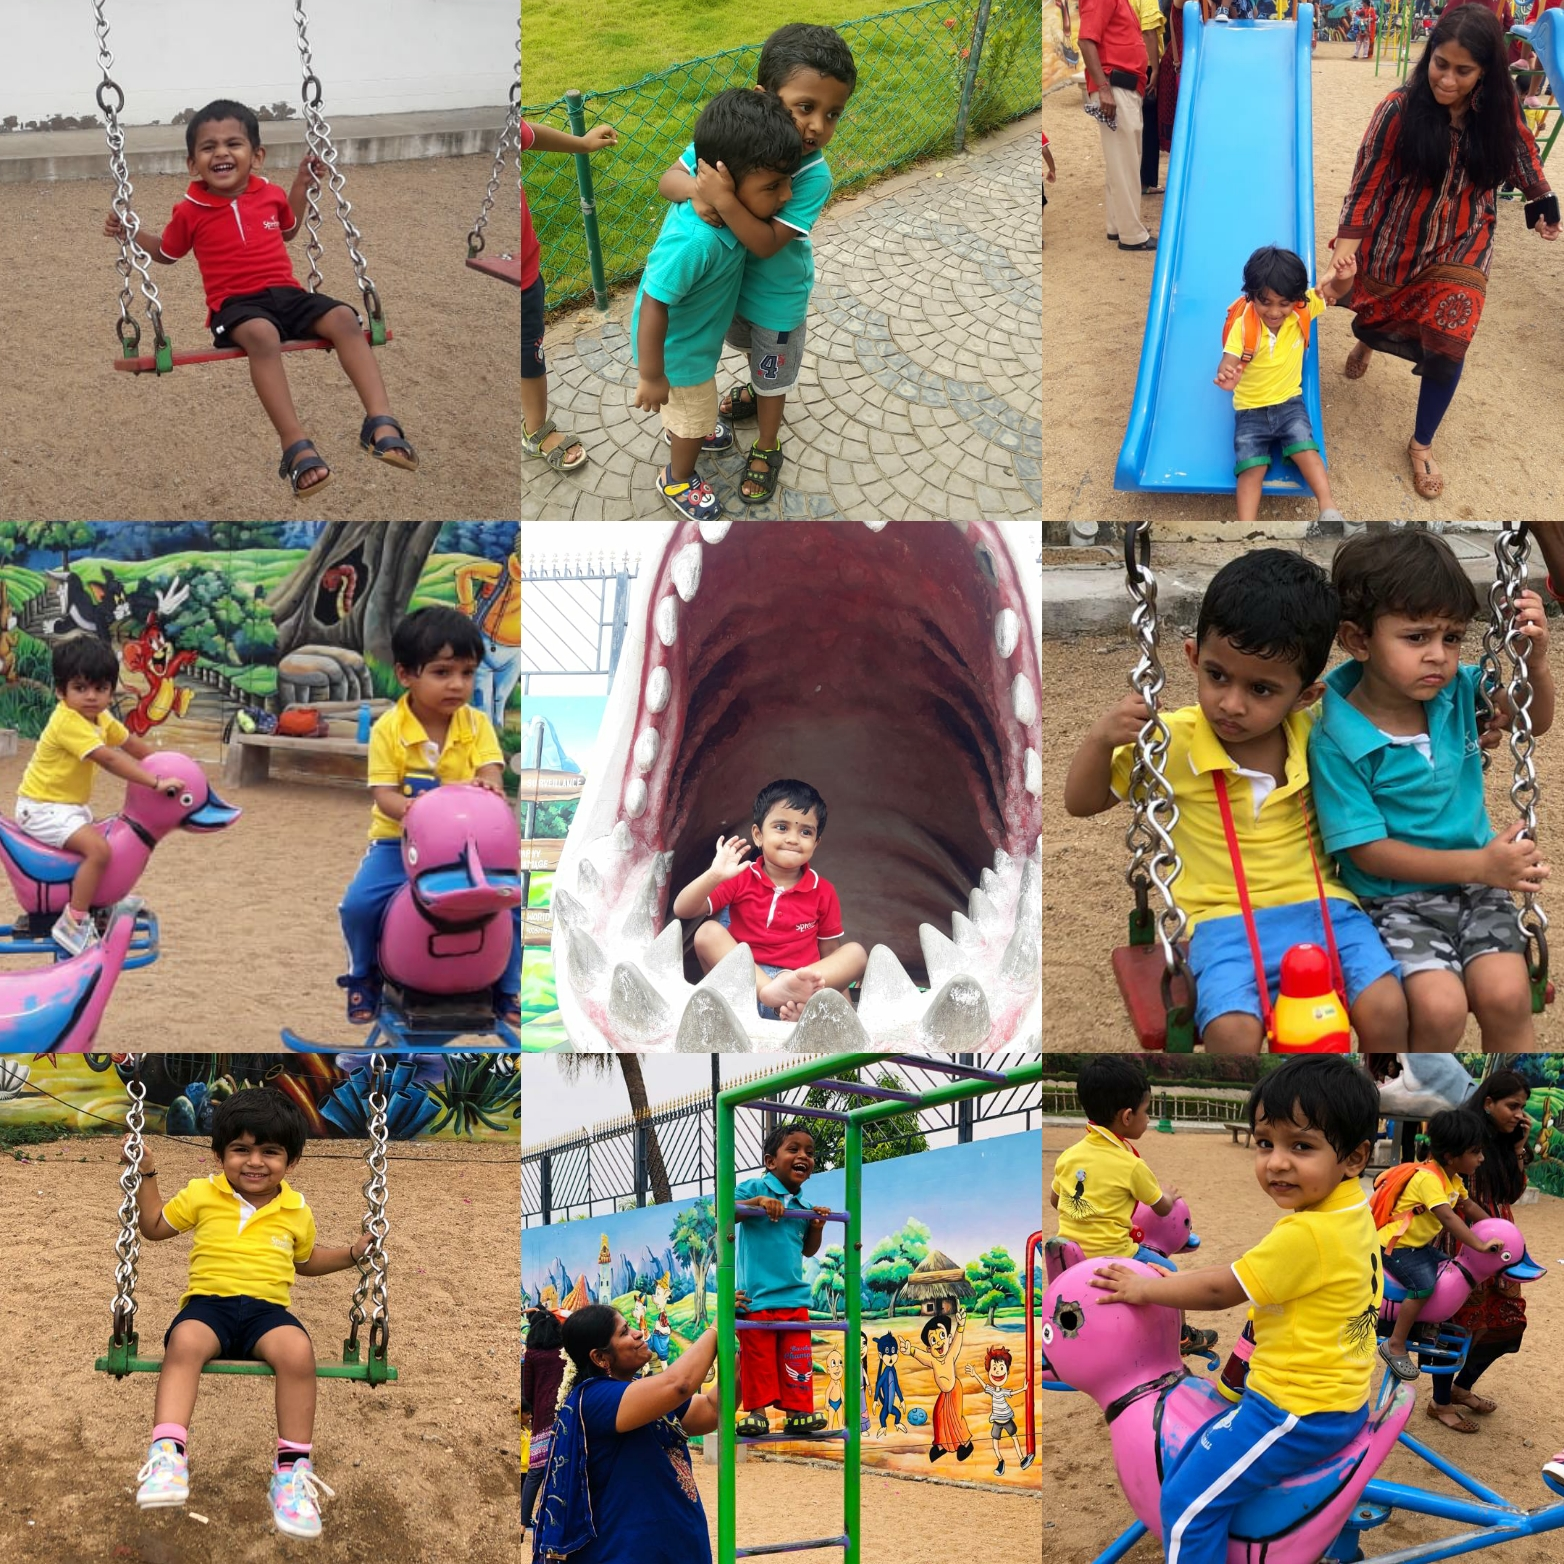 A fun filled day at the Eco Park